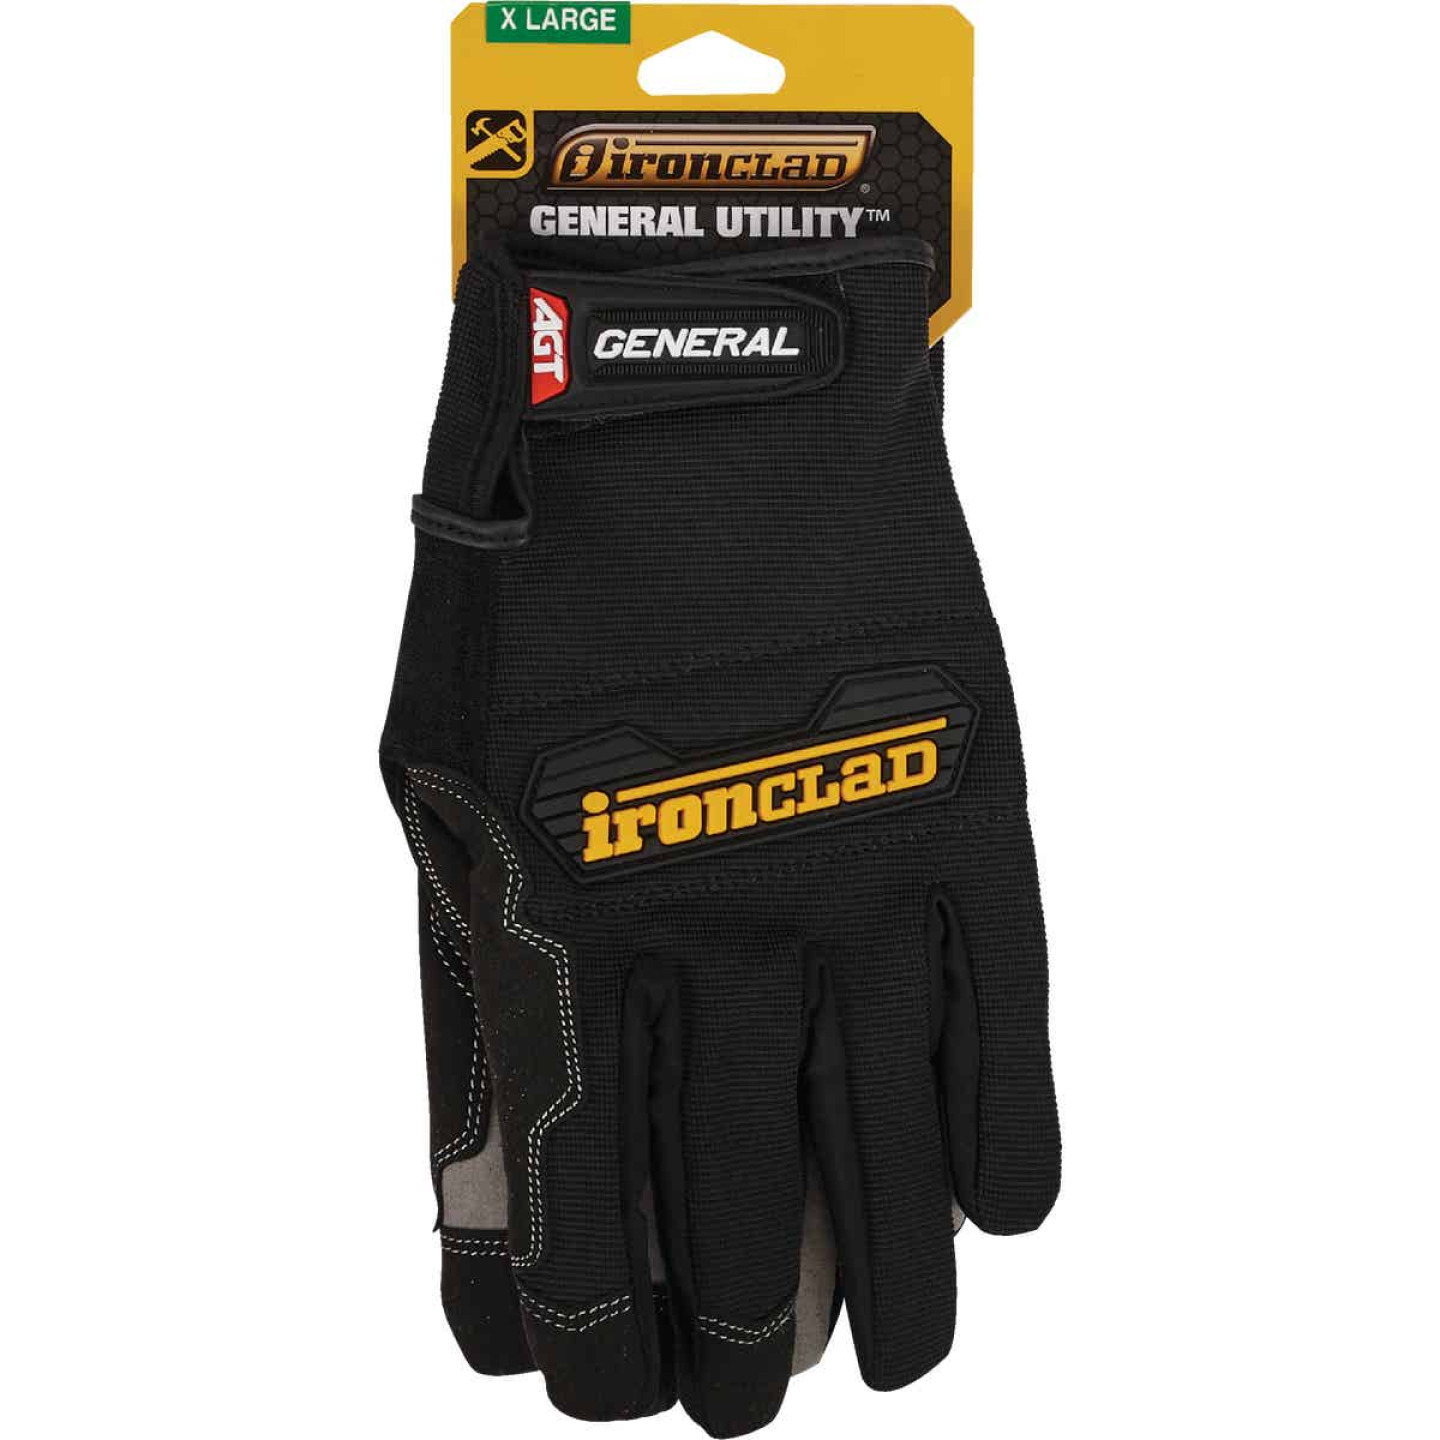 Ironclad General Utility Men's XL Synthetic Suede High Performance Glove Image 2